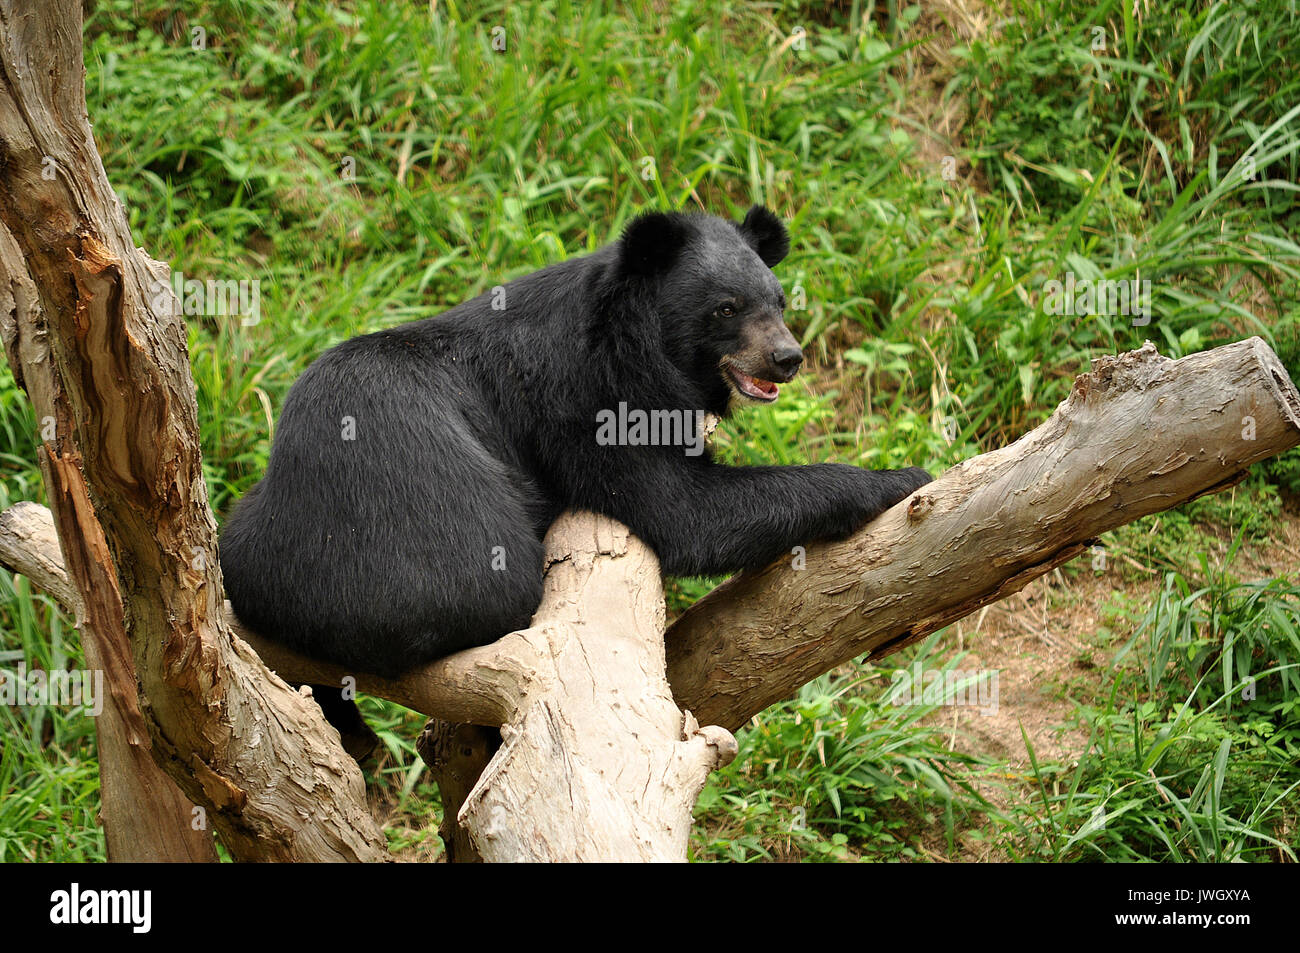 Asian black bears are reproductively compatible with several other bear species, and have on occasion produced hybrid offspring. - Stock Image